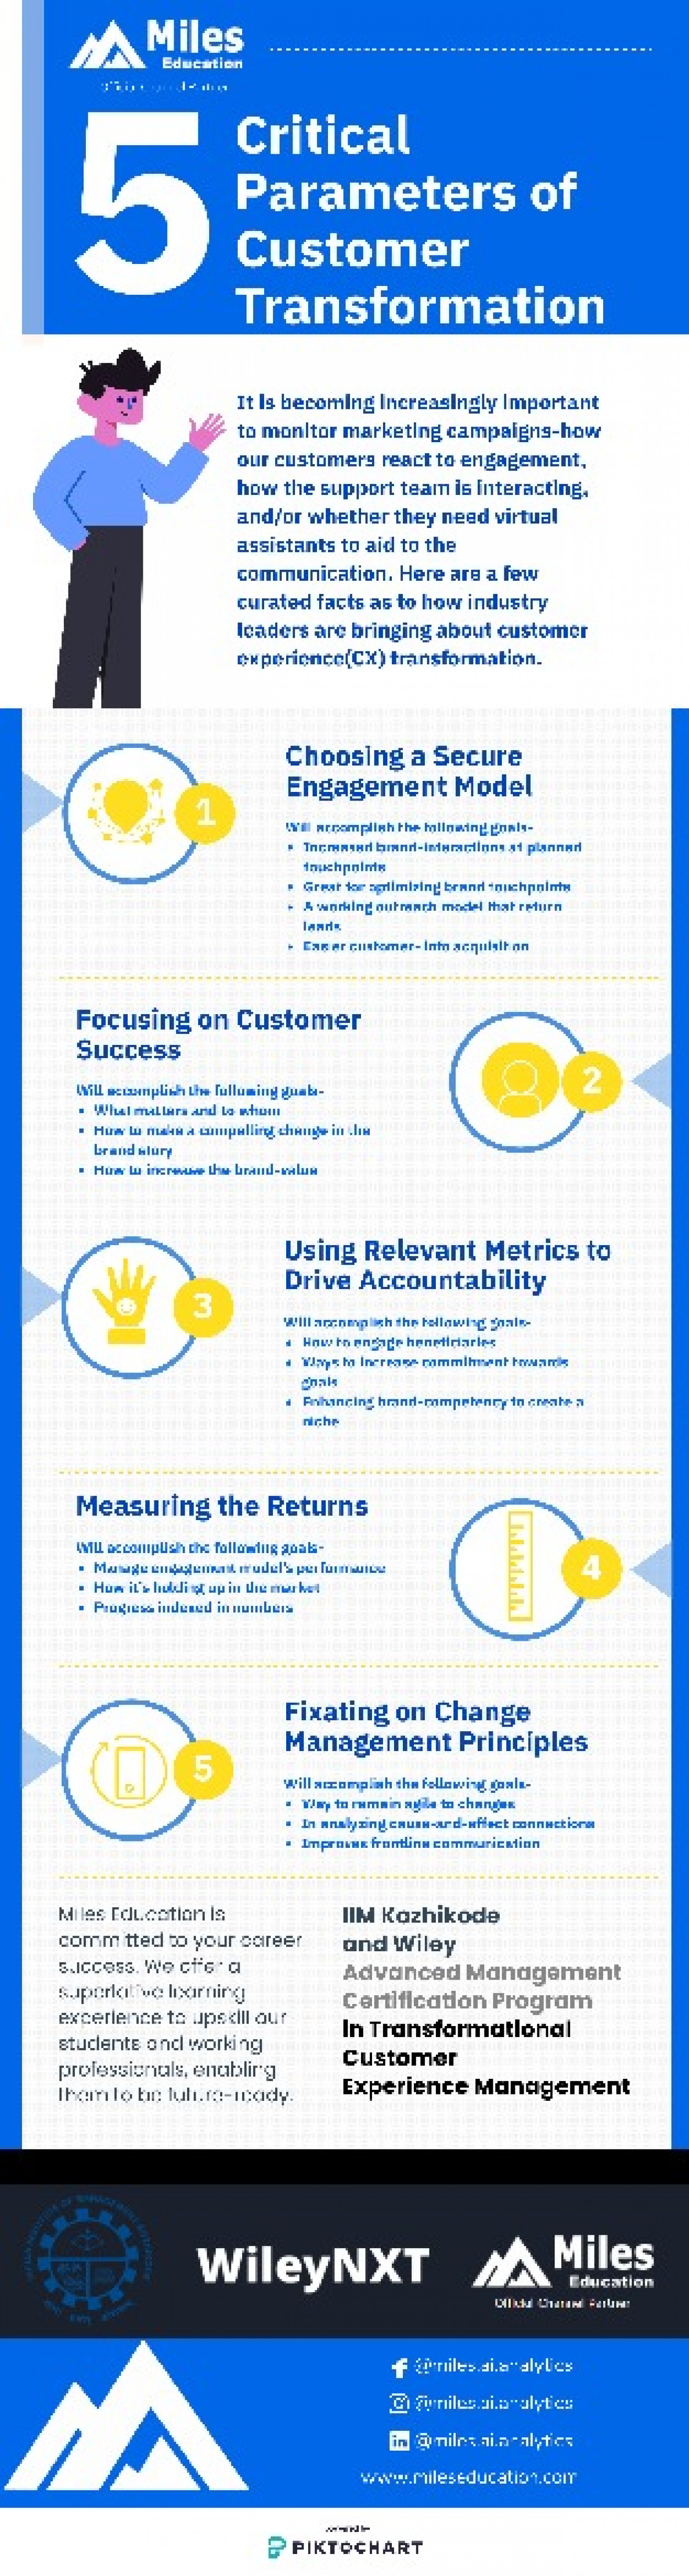 What are the 5 Critical Parameters of Customer Transformation Infographic